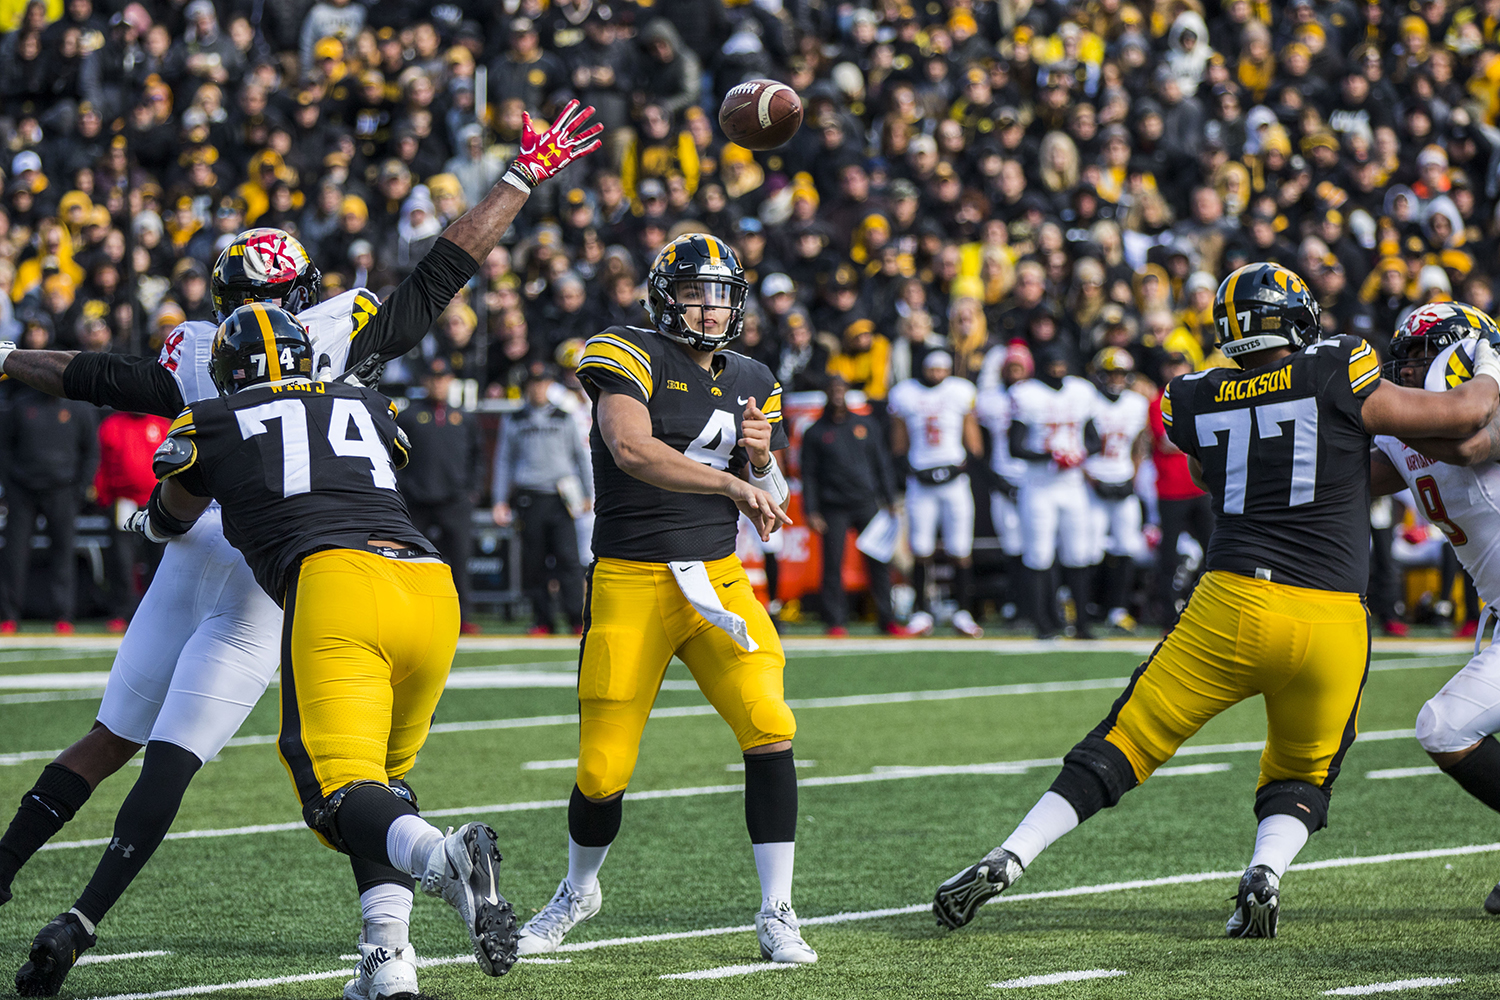 Iowa+quarterback+Nate+Stanley+throws+a+pass+during+the+Iowa%2FMaryland+homecoming+football+game+at+Kinnick+Stadium+on+Saturday%2C+October+20%2C+2018.+The+Hawkeyes+defeated+the+Terrapins%2C+23-0.+